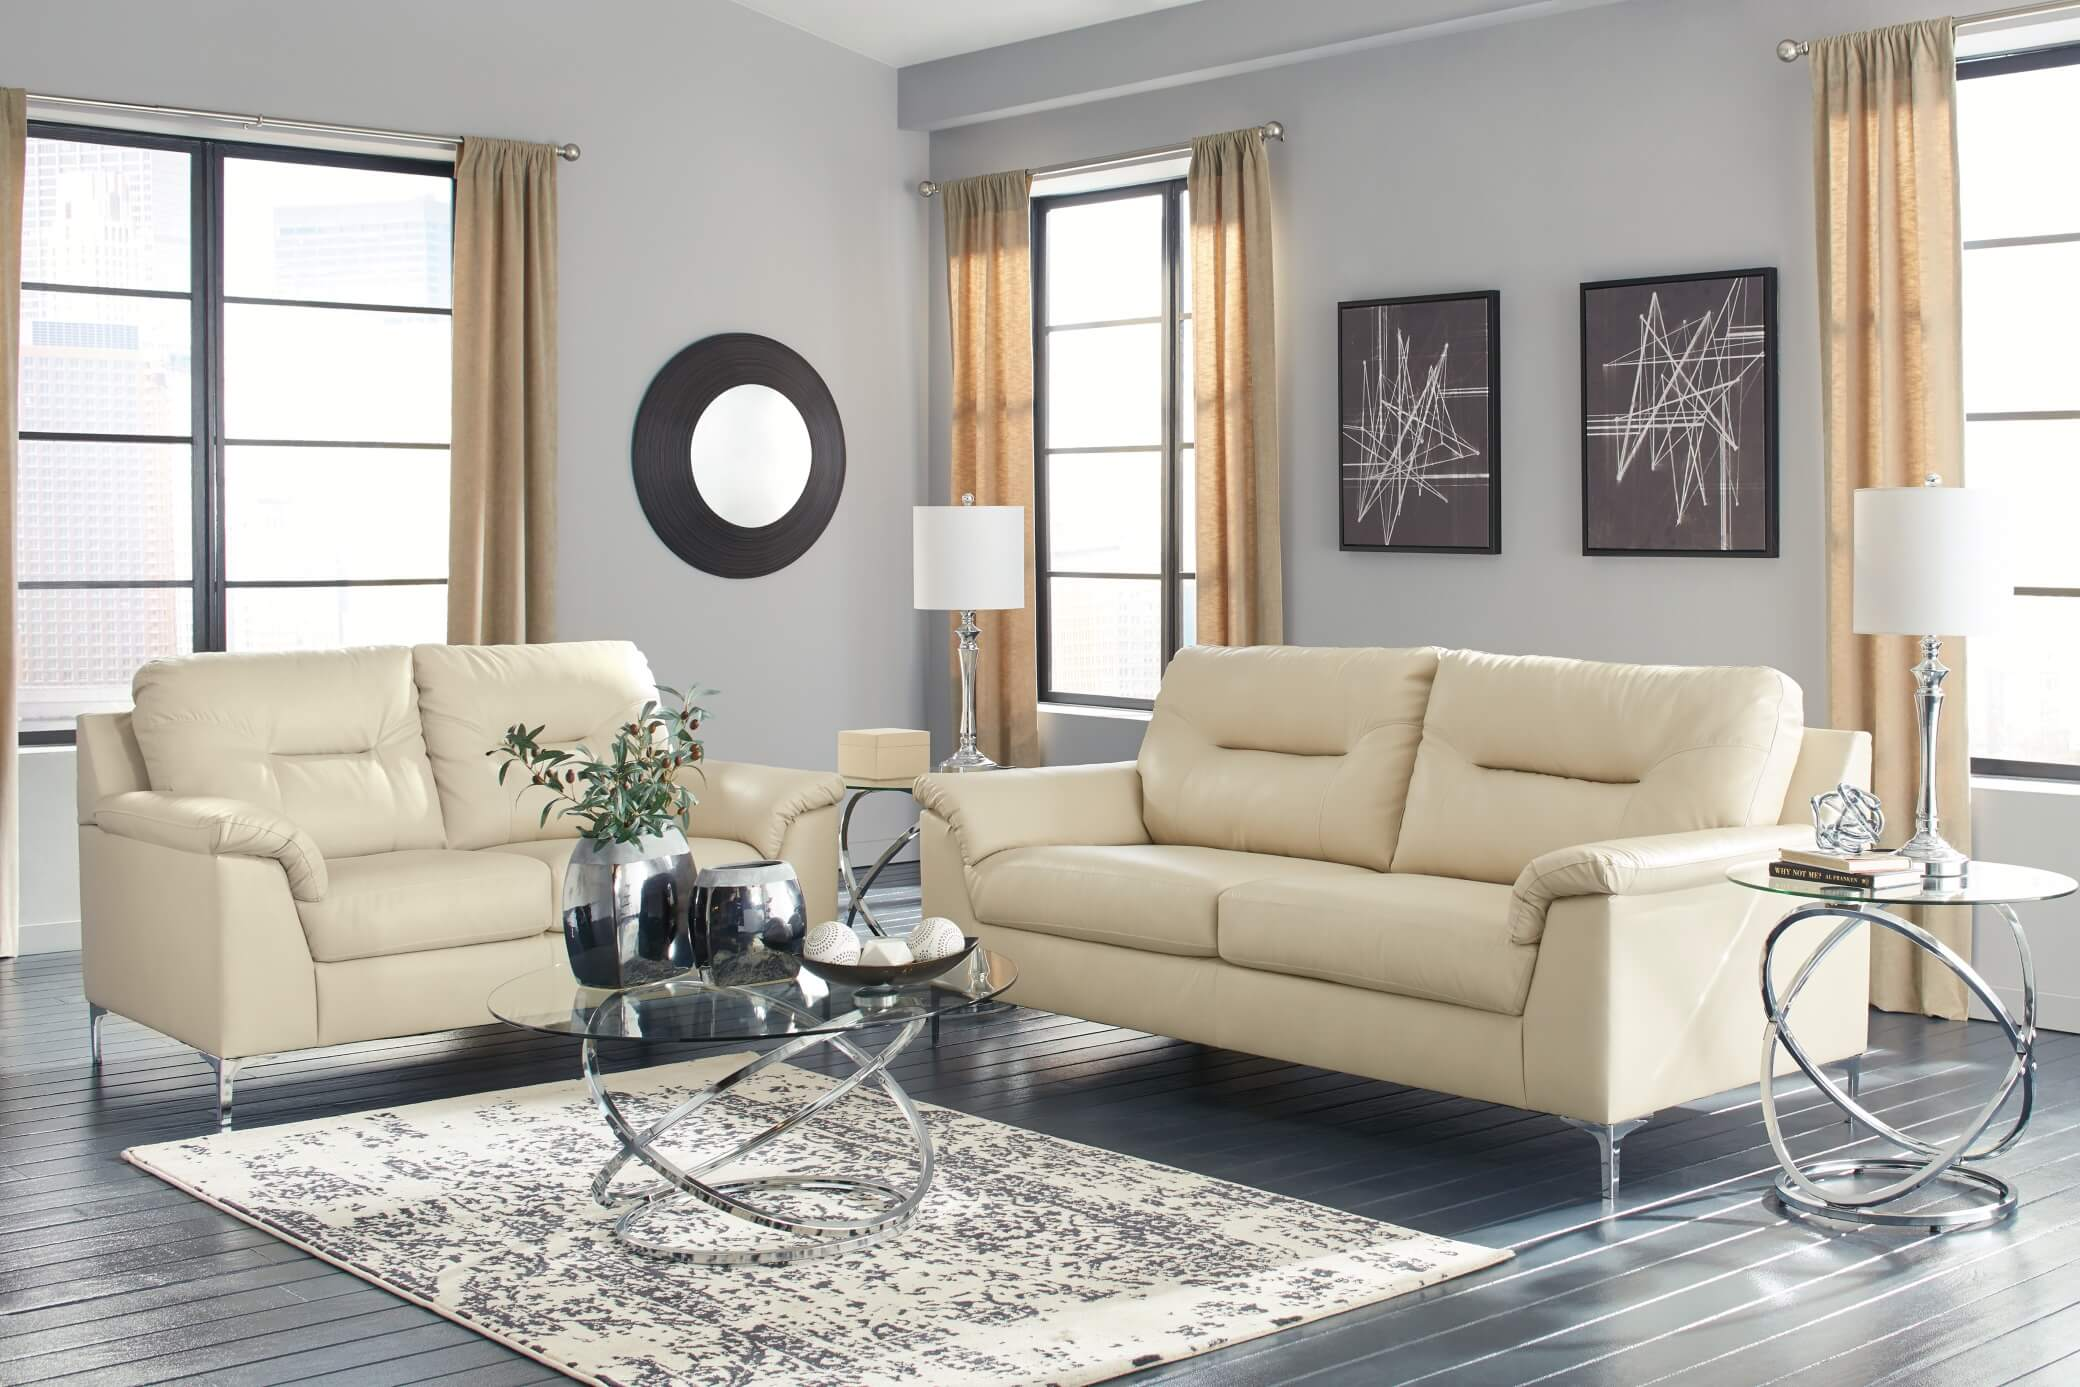 Contemporary Living Set 39602 Tensas Ice Contemporary Living Room Set